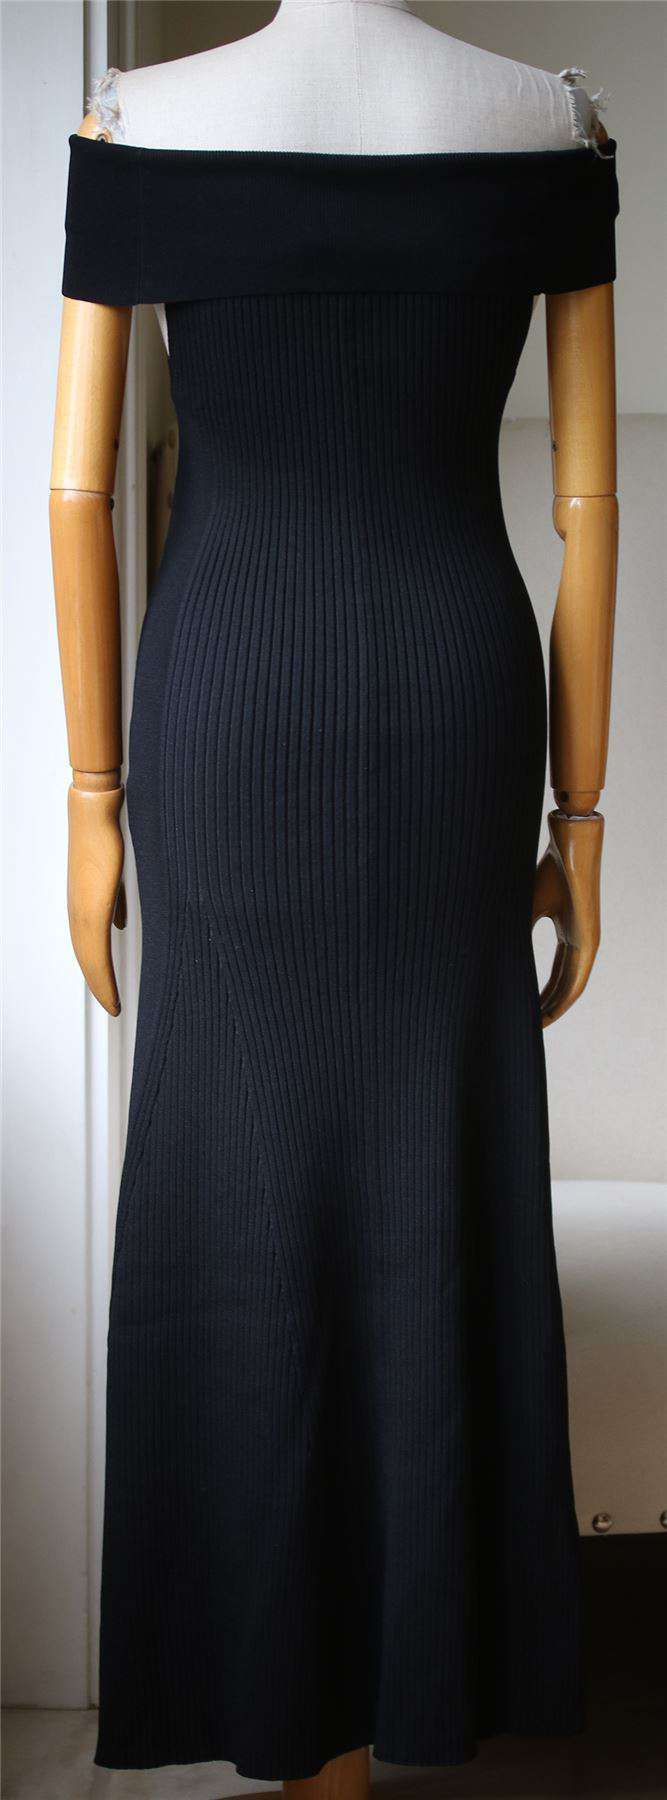 BY MALENE BIRGER ALLIANE OFF THE SHOULDER RIBBED MAXI DRESS MEDIUM